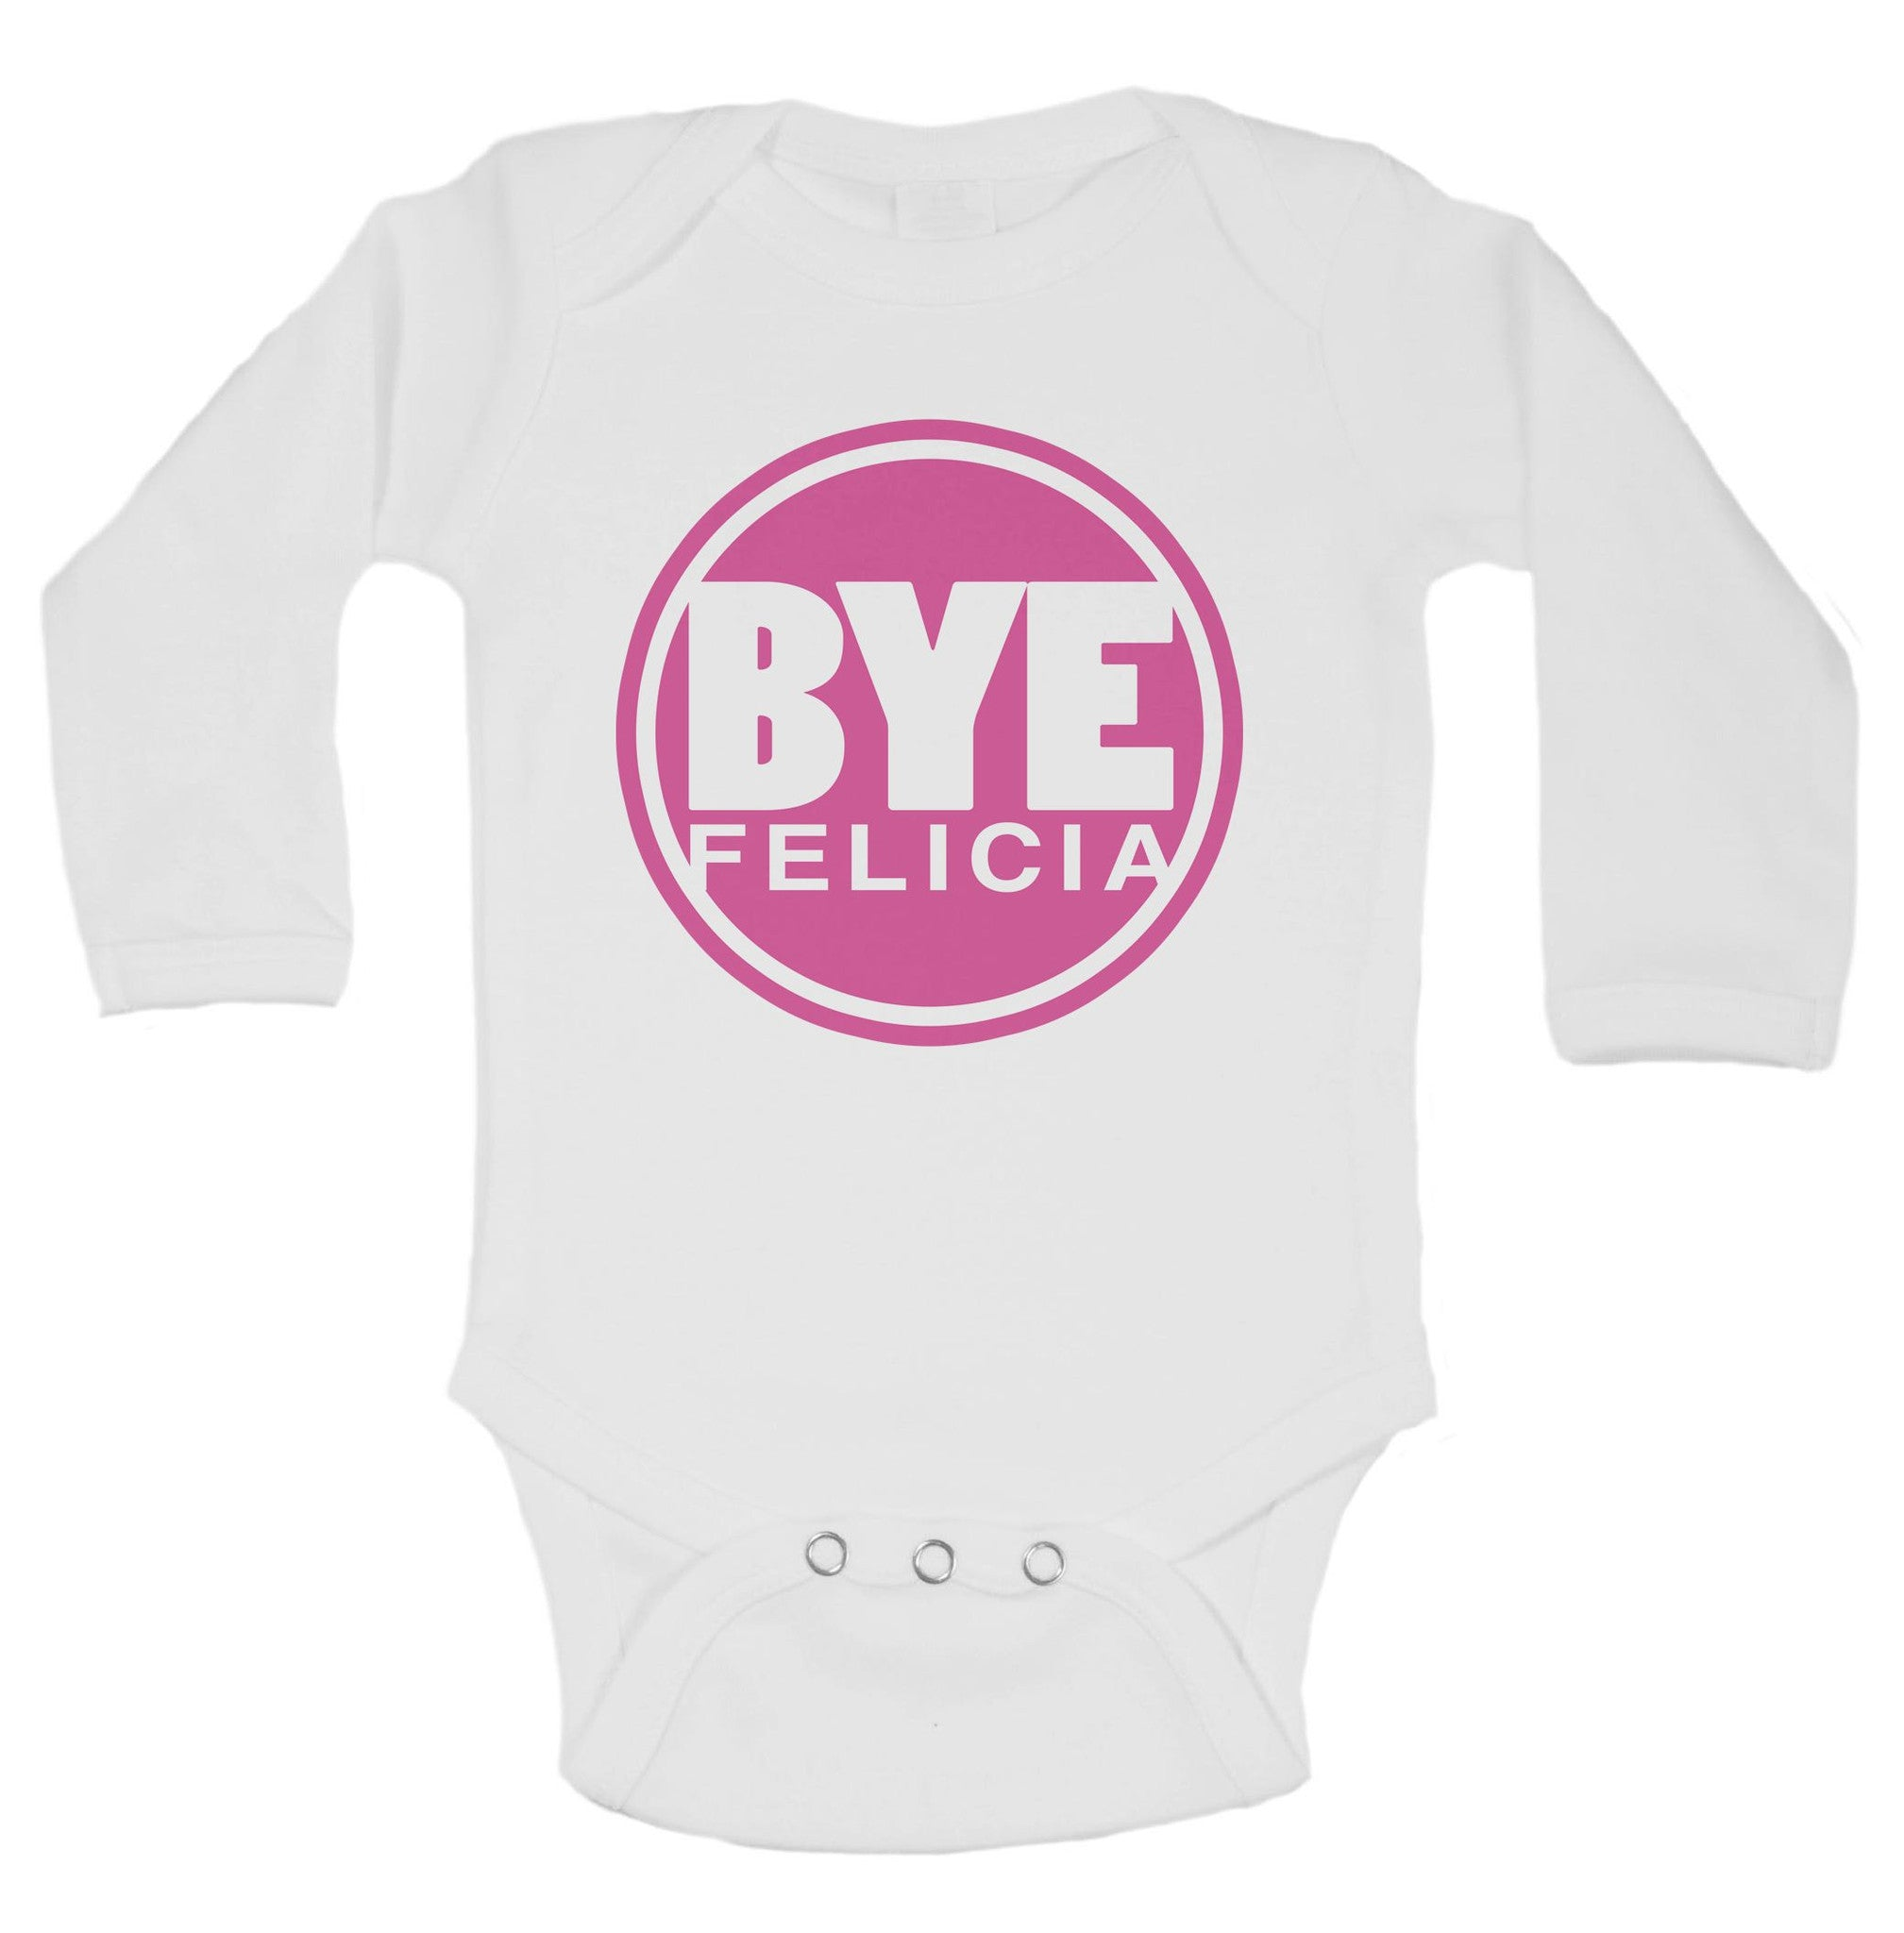 Bye Felicia Funny Kids Onesie - B29 - Funny Shirts Tank Tops Burnouts and Triblends  - 1